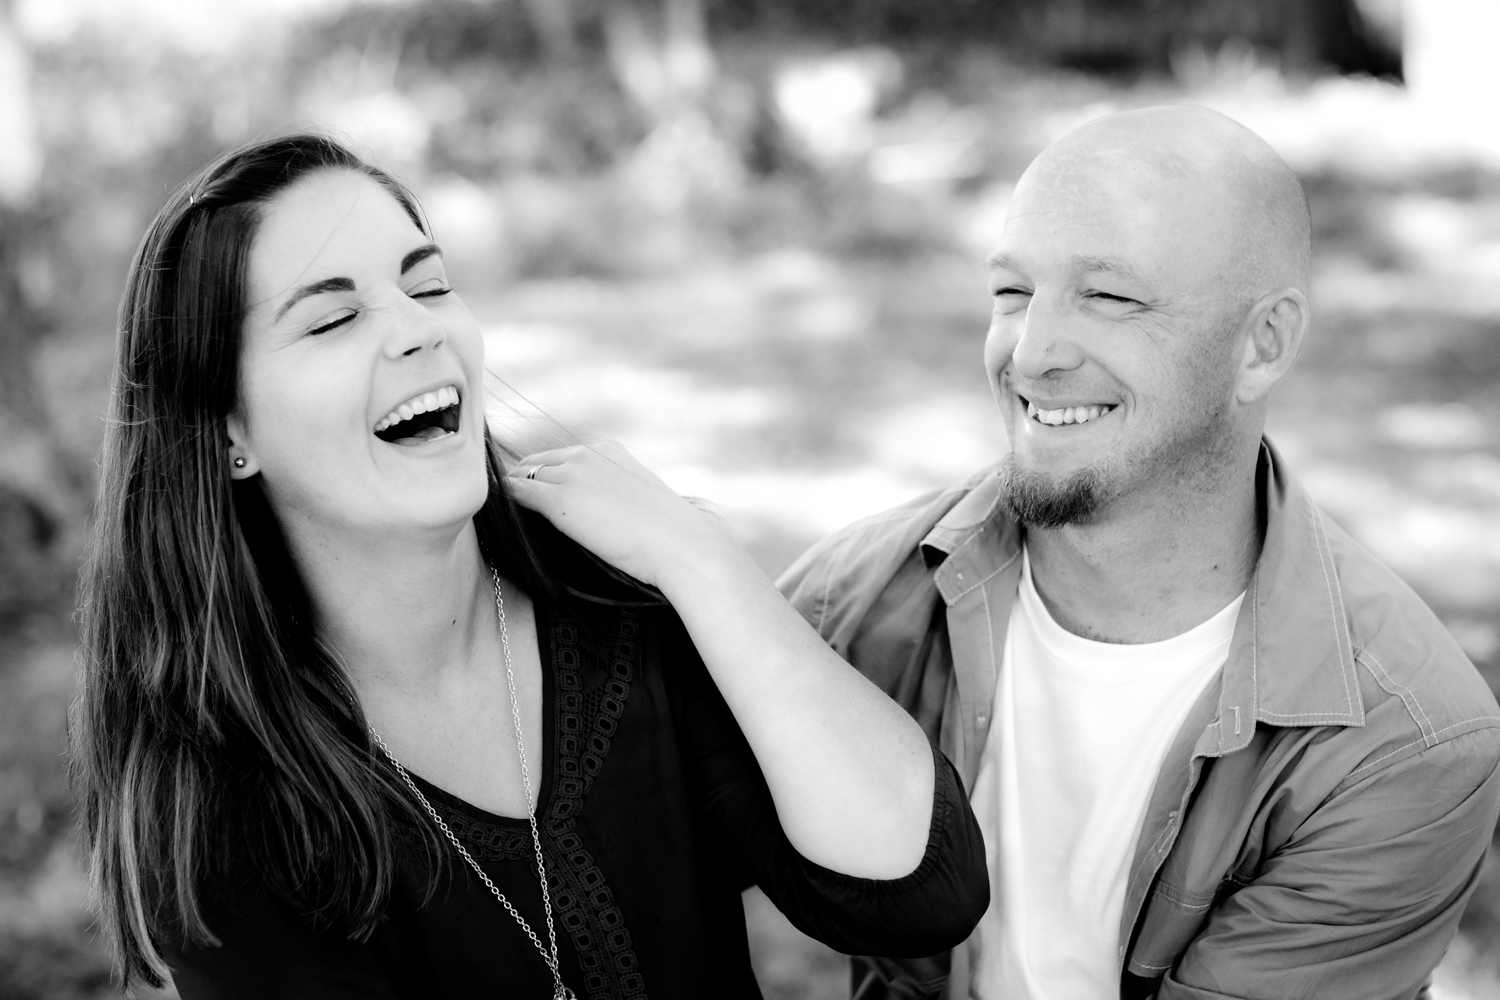 Candid couples photography - Fun Ways to Photograph Couples That are a Bit Awkward